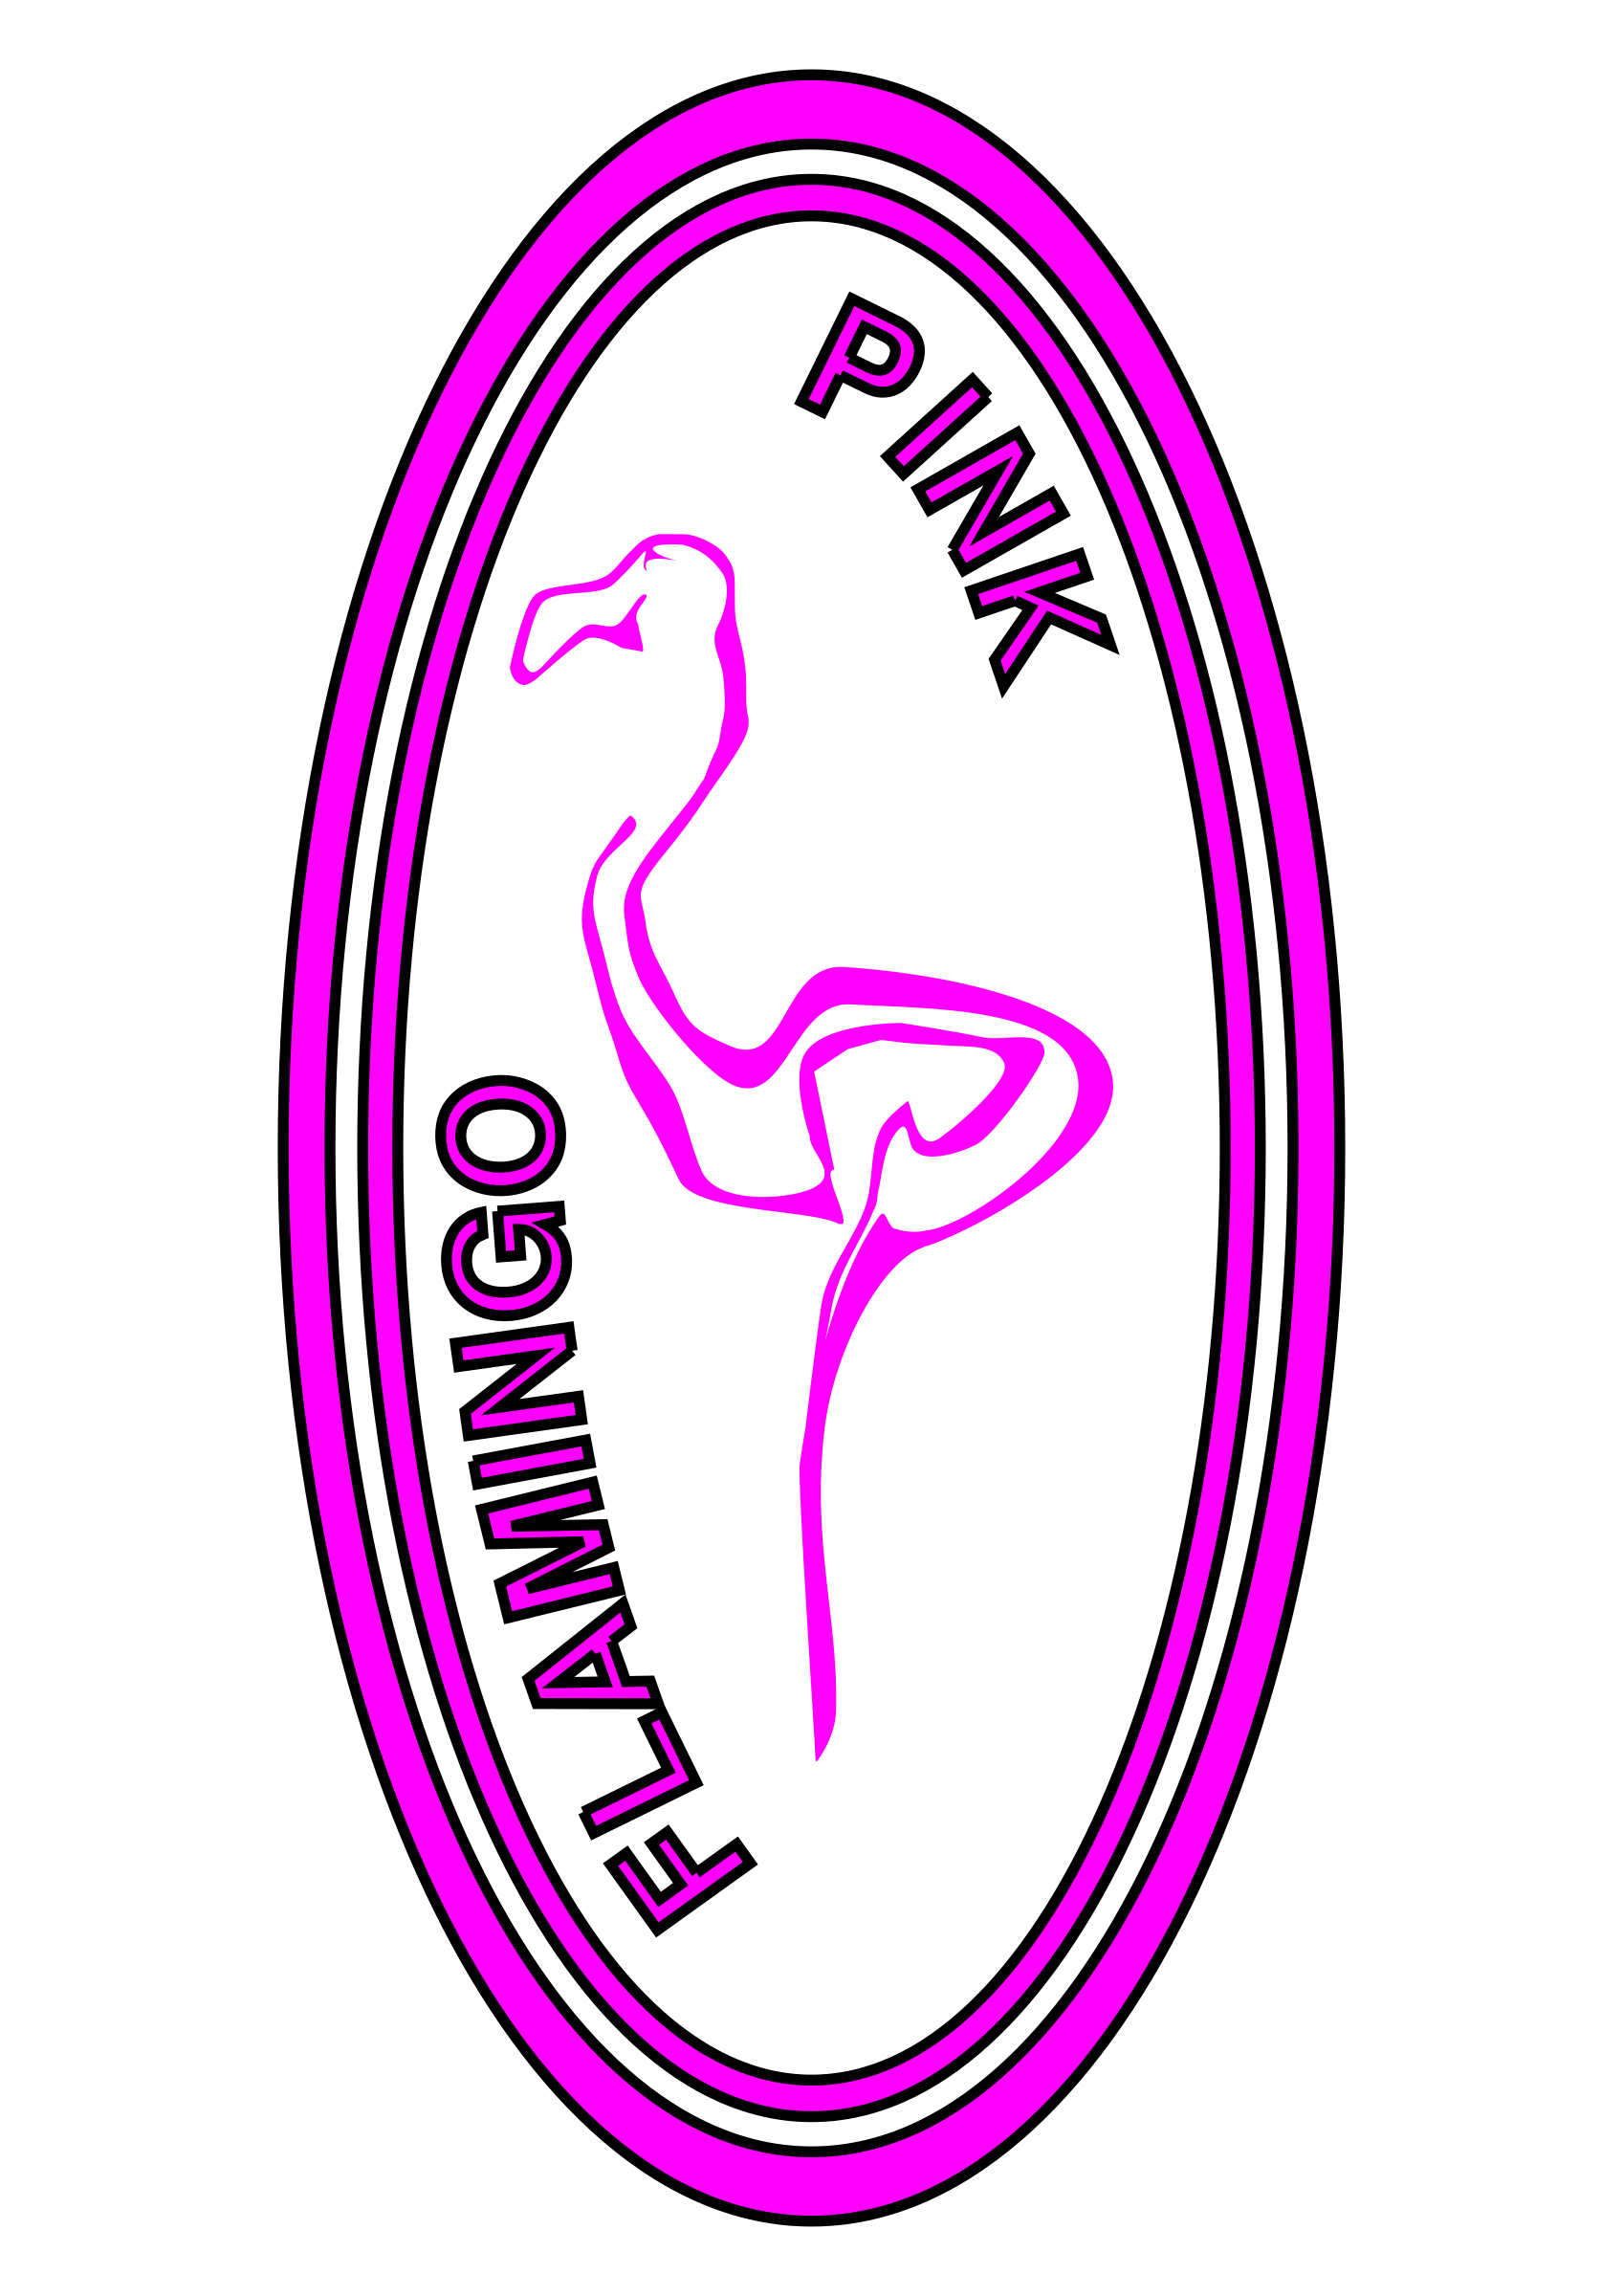 Pink Flamingo by Dux Phoenix